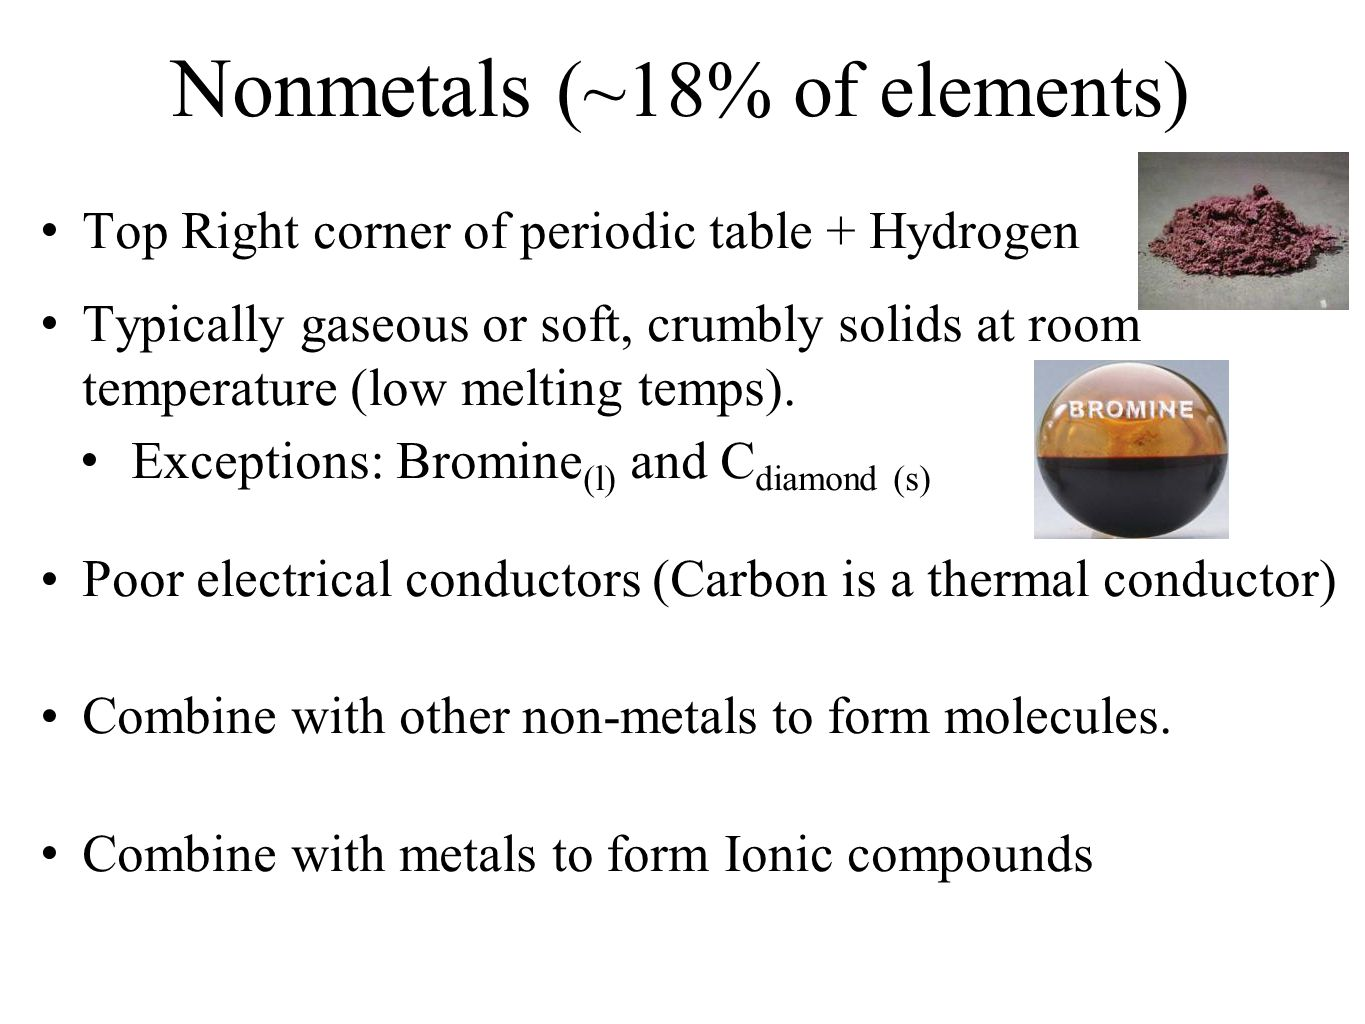 History and trends of the periodic table ppt video online download nonmetals 18 of elements gamestrikefo Image collections